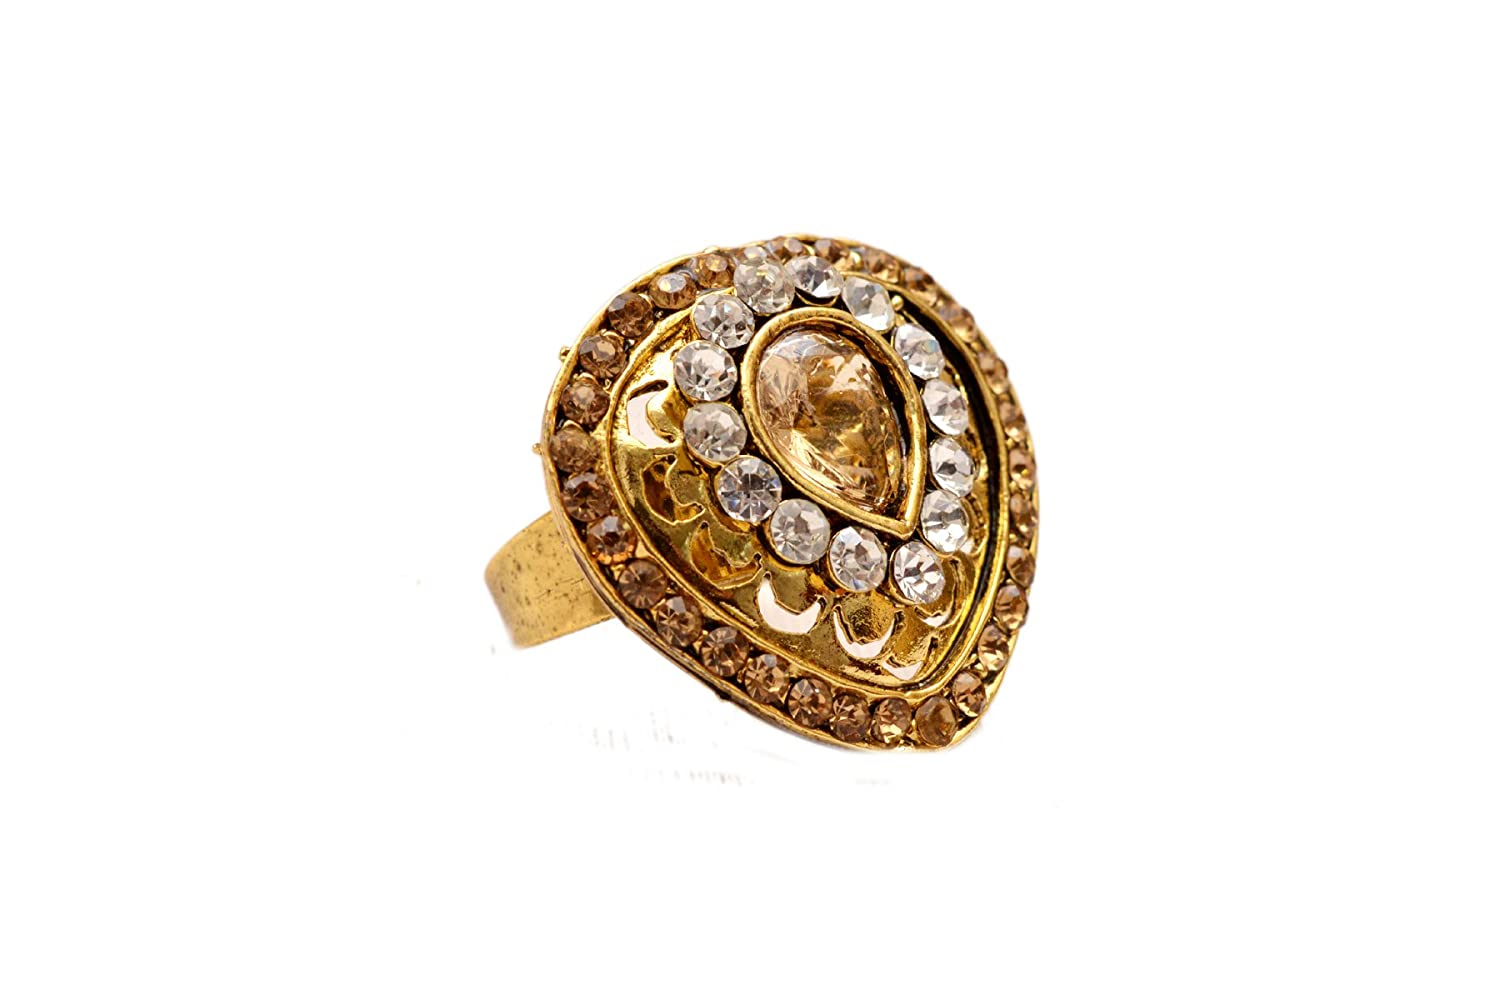 Indian Traditional Ethnic Jewelry Gold Tone Designer CZ Adjustable Ring Jewelry